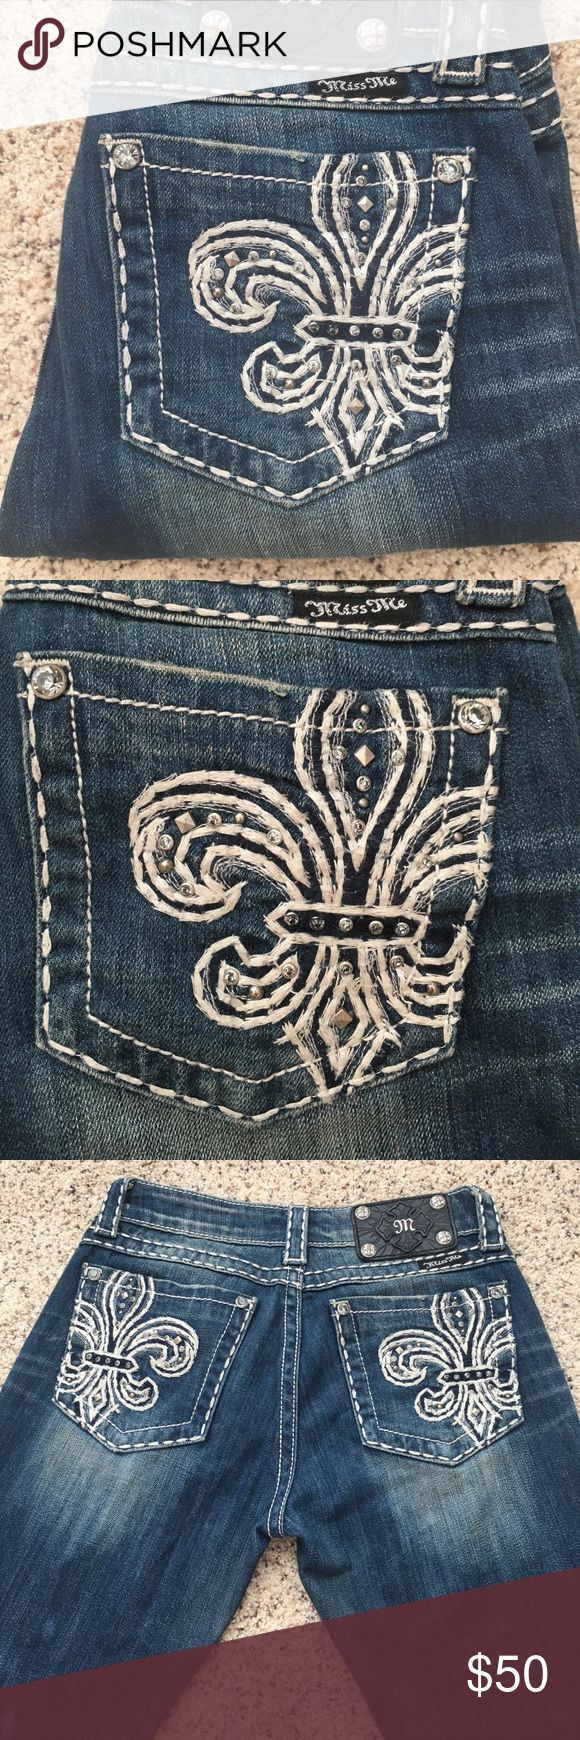 Fleur-de-lis Miss Me jeans Size 26 skinny leg miss me jeans with stitched fleur-de-lis back pockets. Message me if you have a questions or want more pictures! Miss Me Jeans Skinny